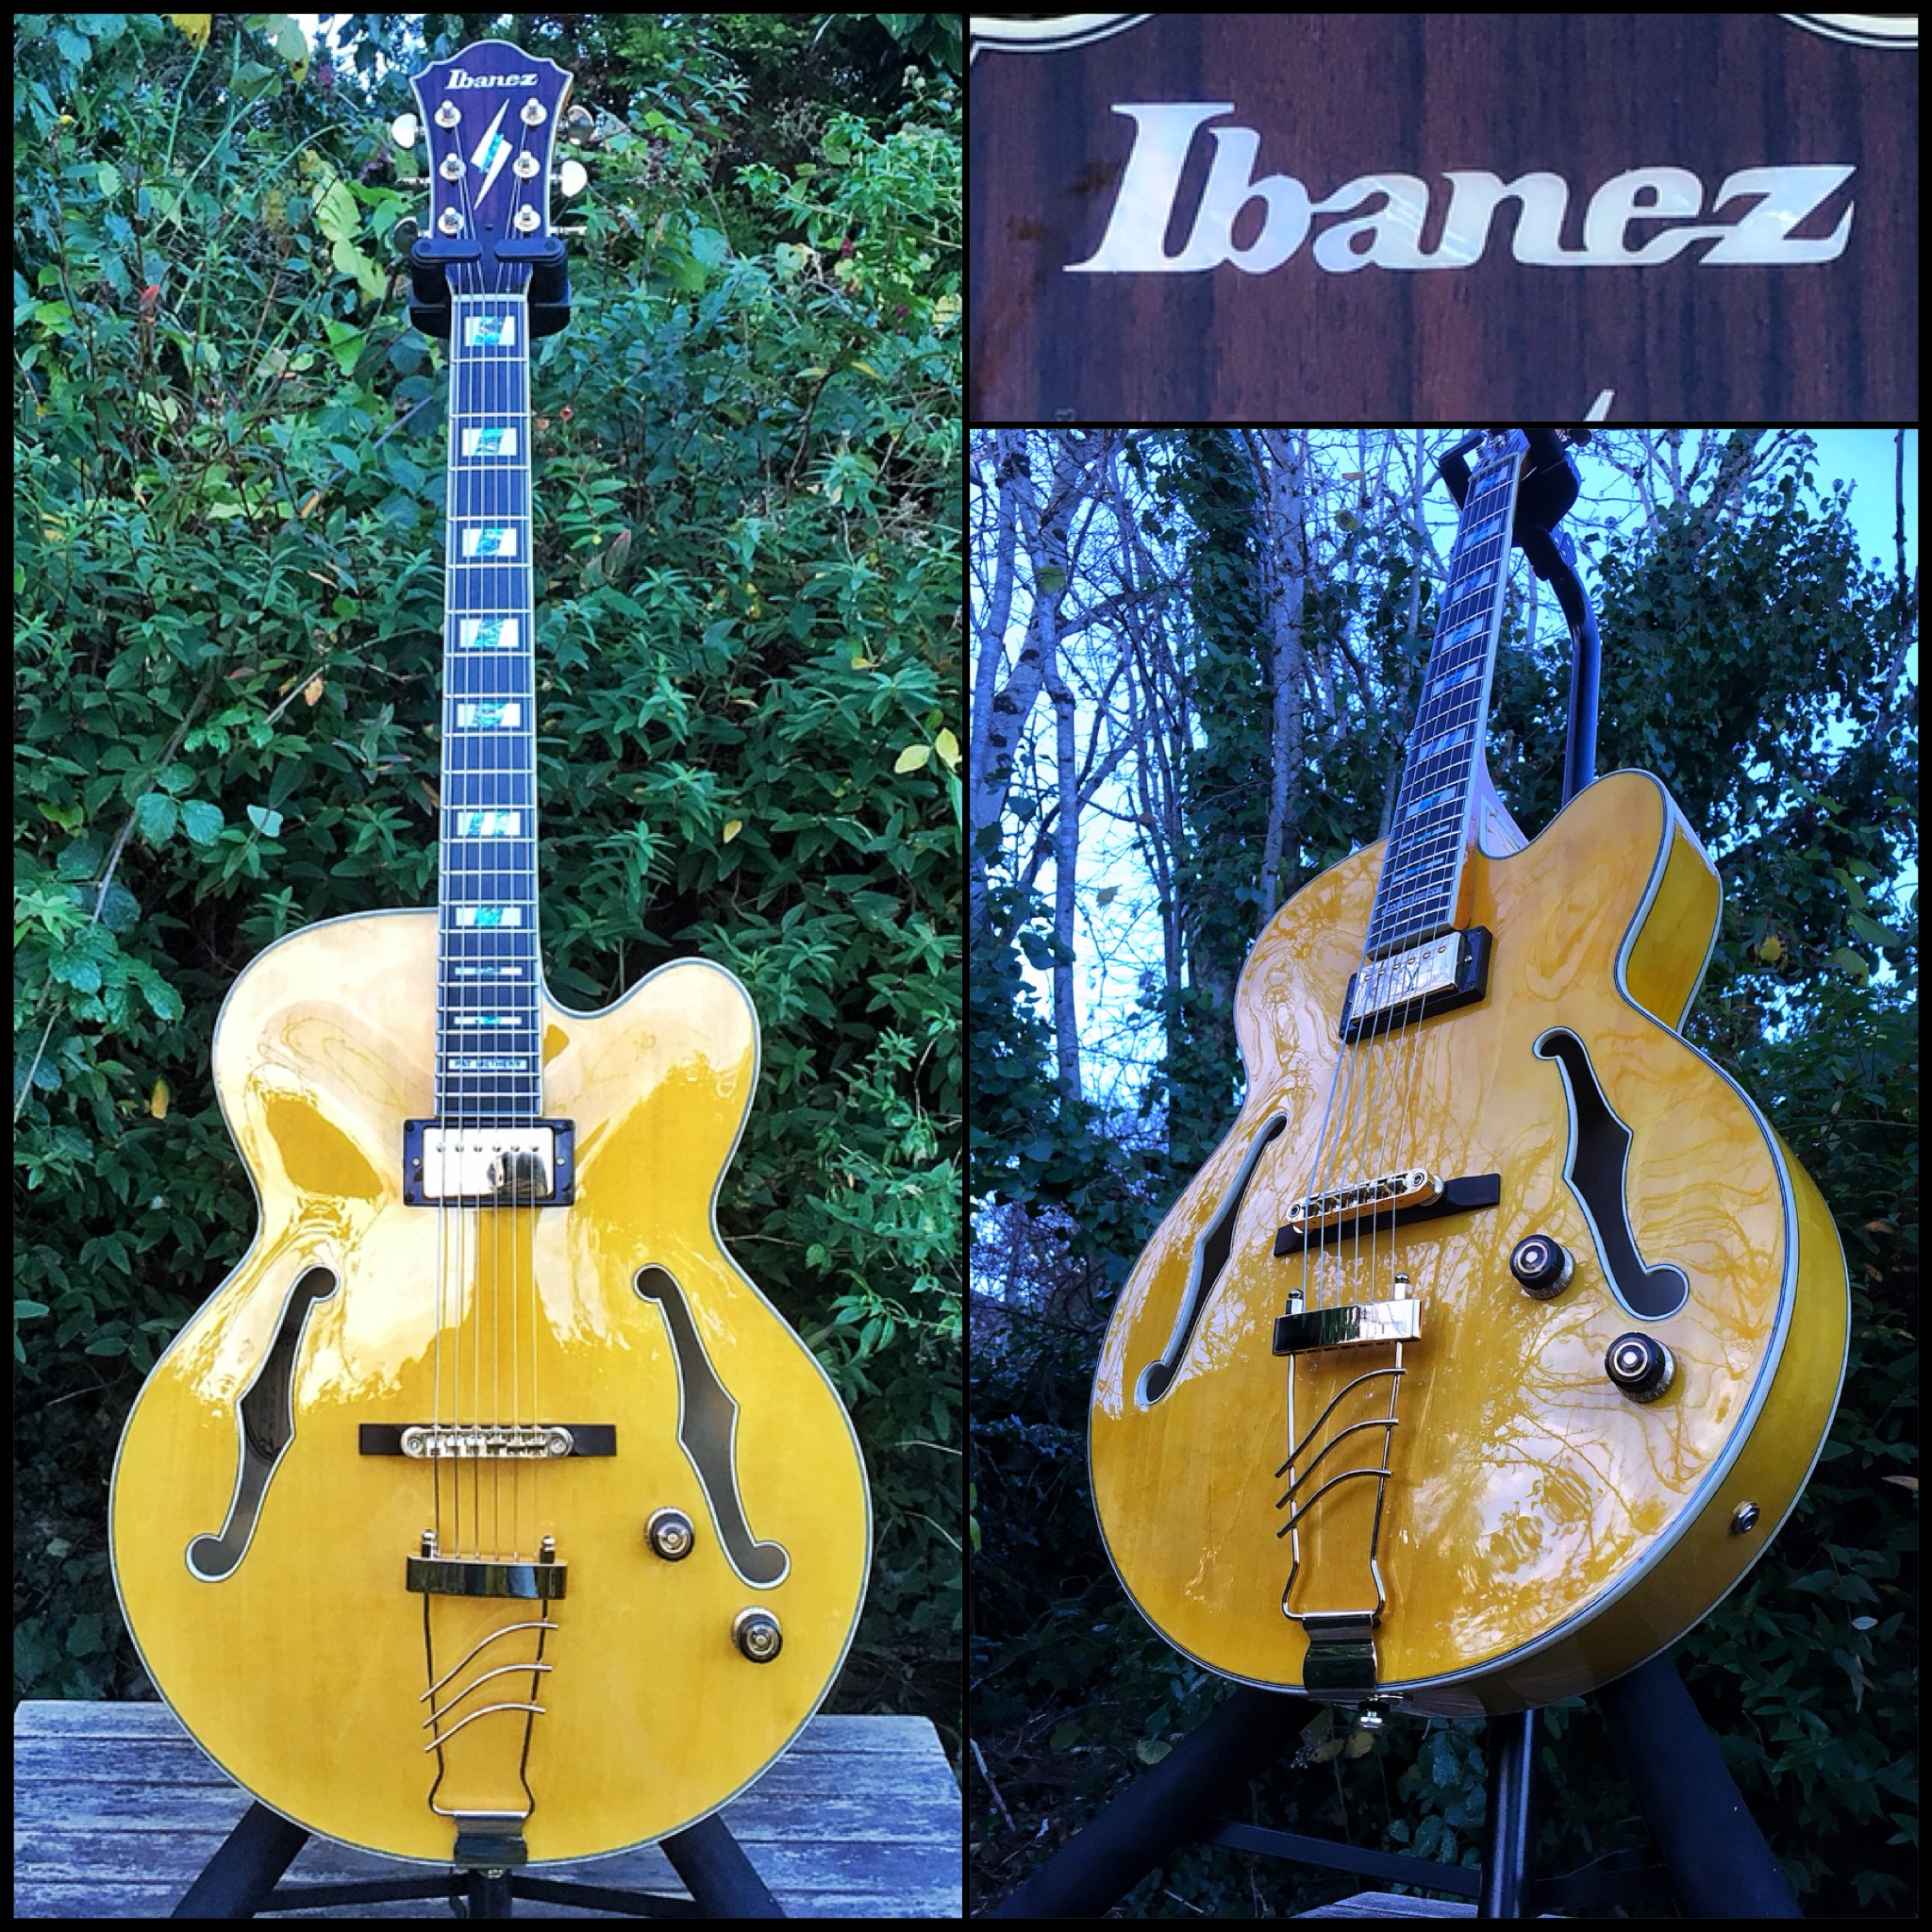 Ibanez Pat Metheny